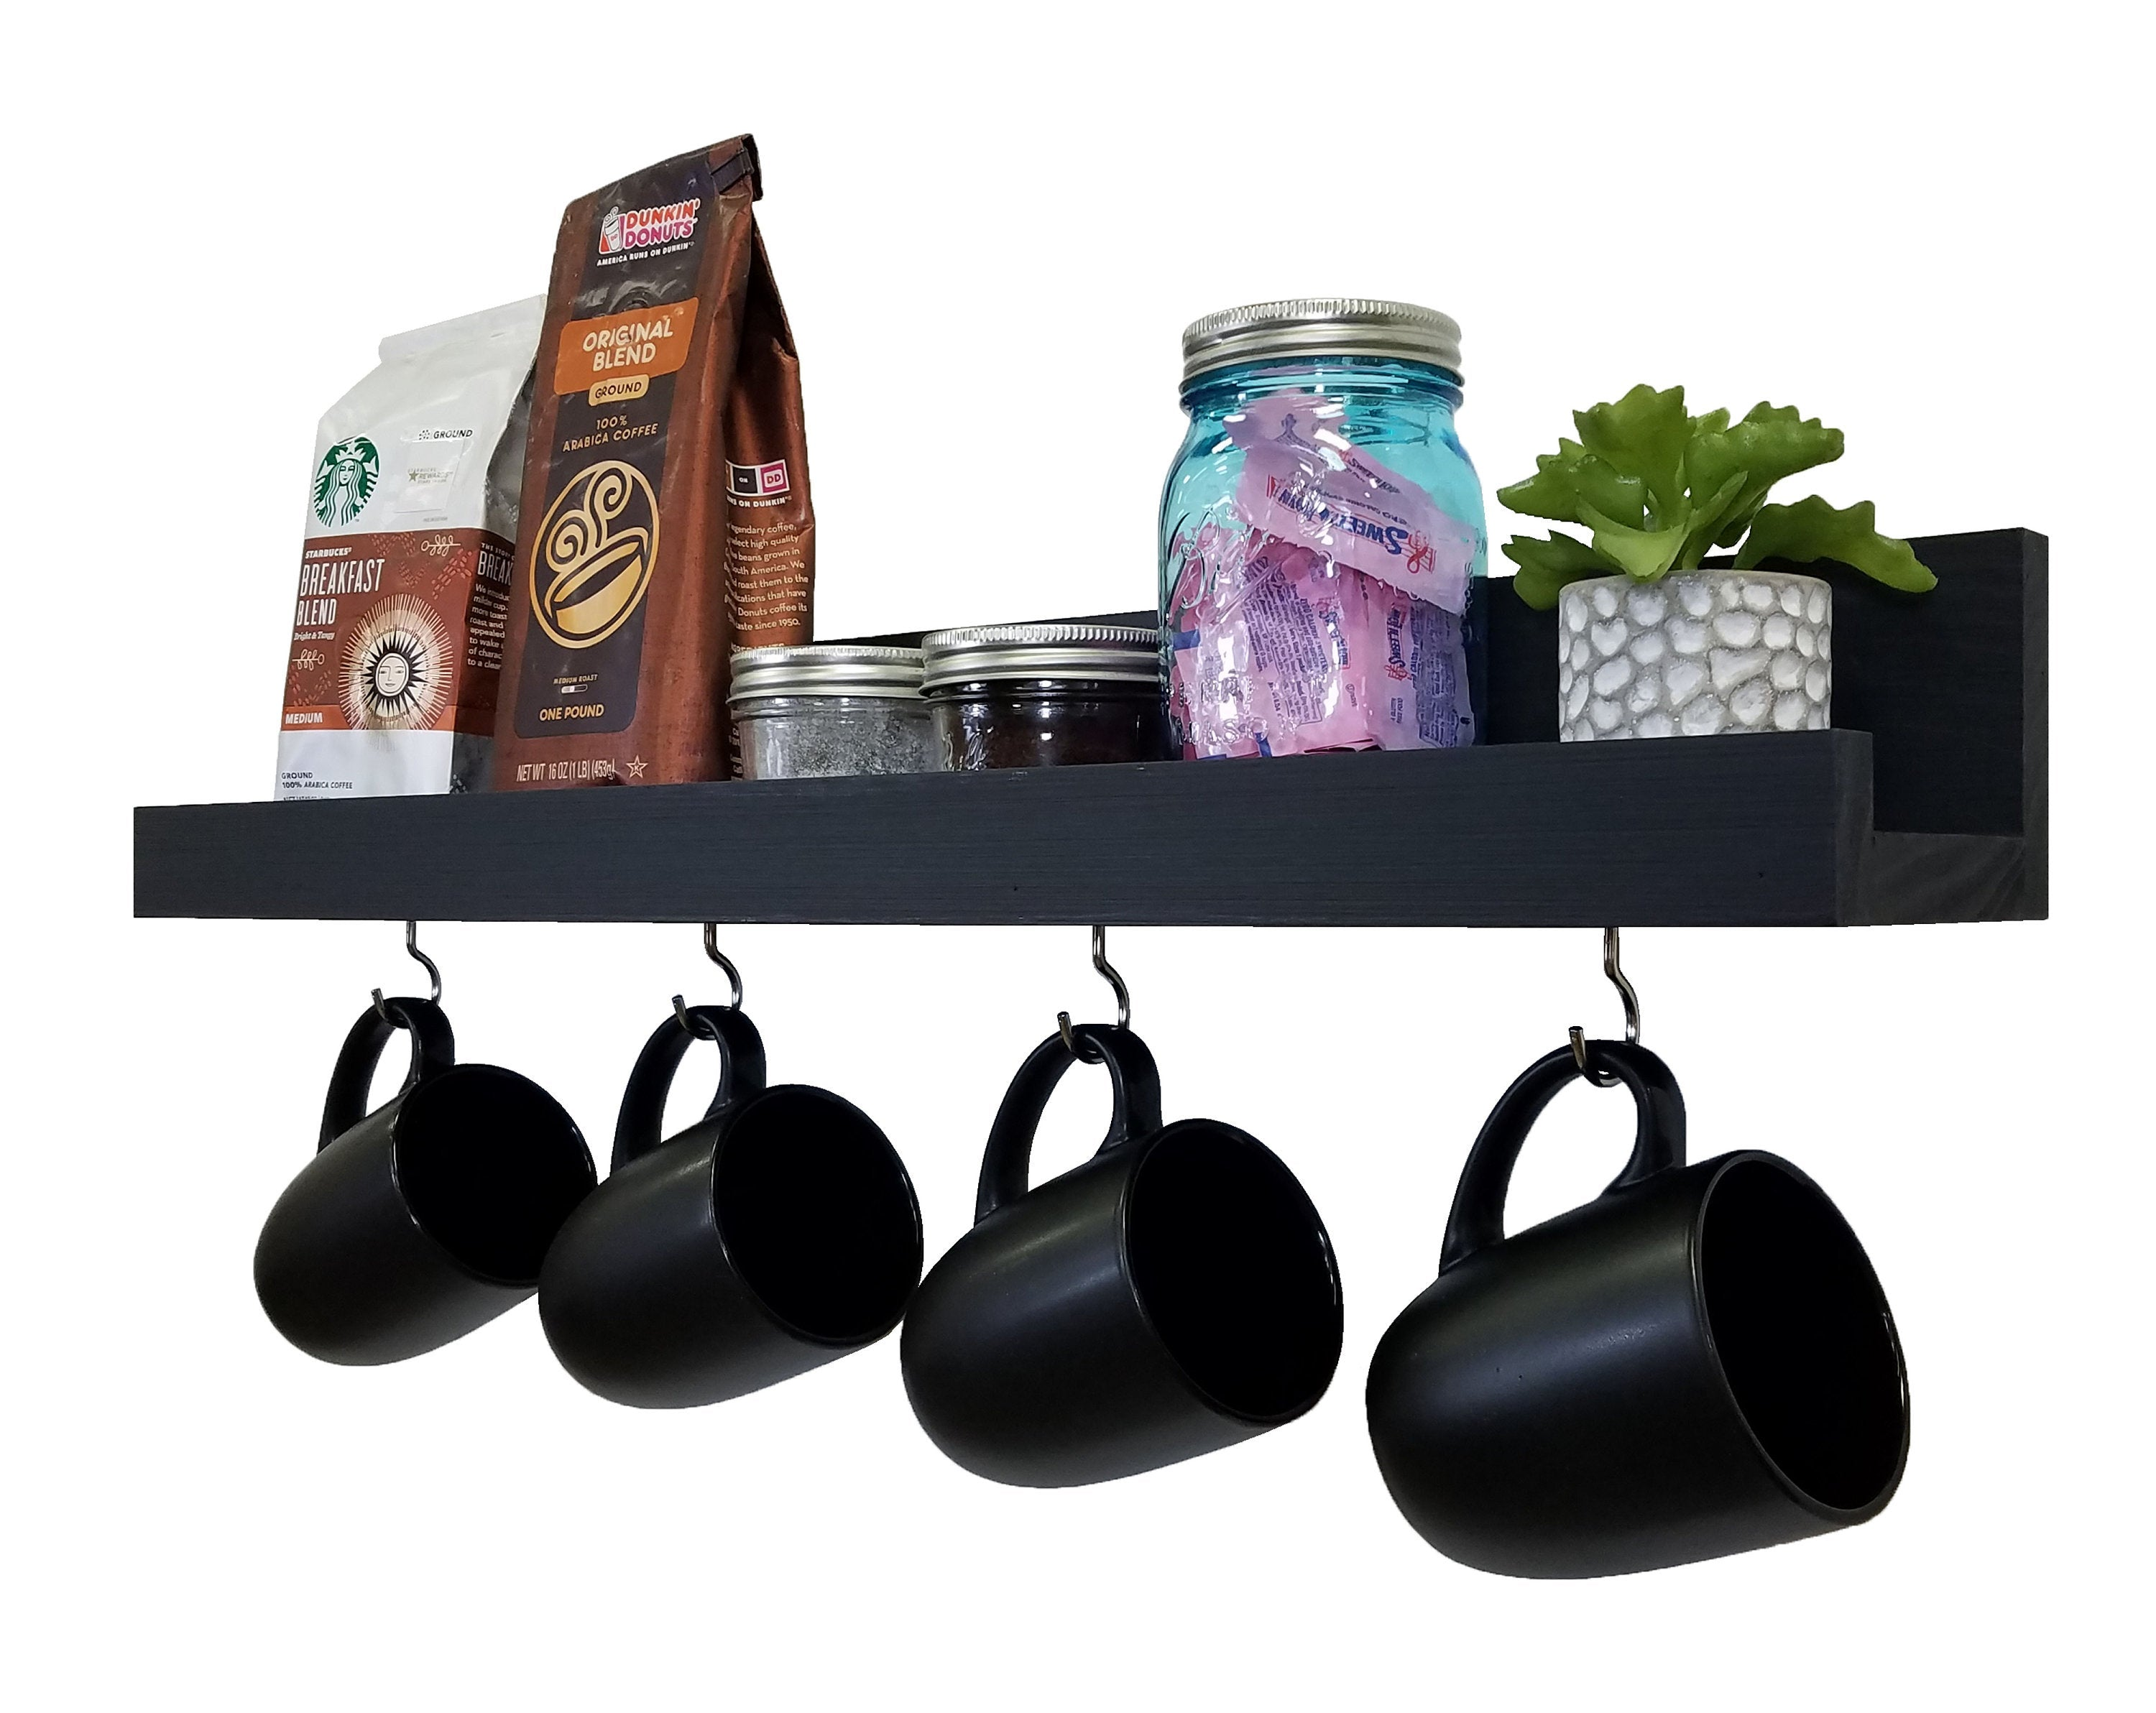 Bridgewater Wooden Wall Shelf with Hooks - 20 Paint Colors - Renewed Decor & Storage